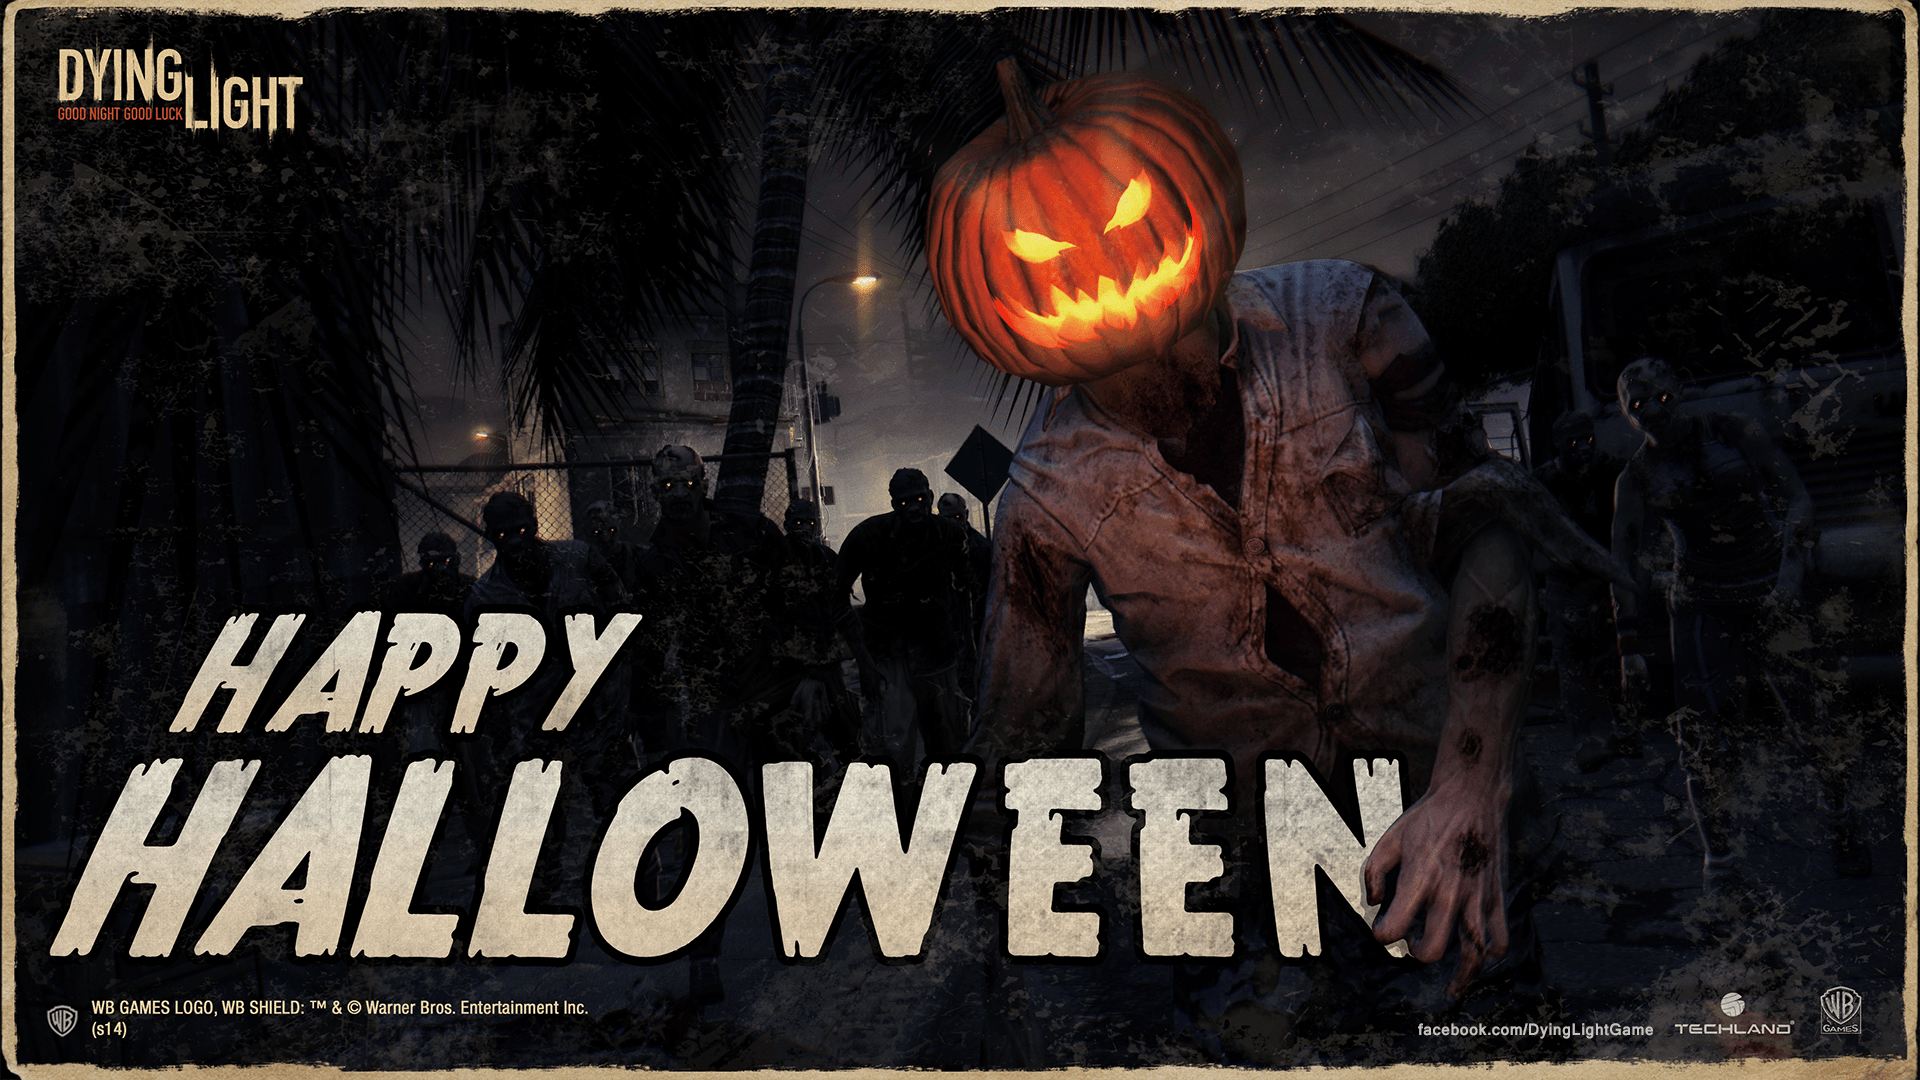 Get In The Halloween Spirit With These 'Dying Light' Wallpapers ...